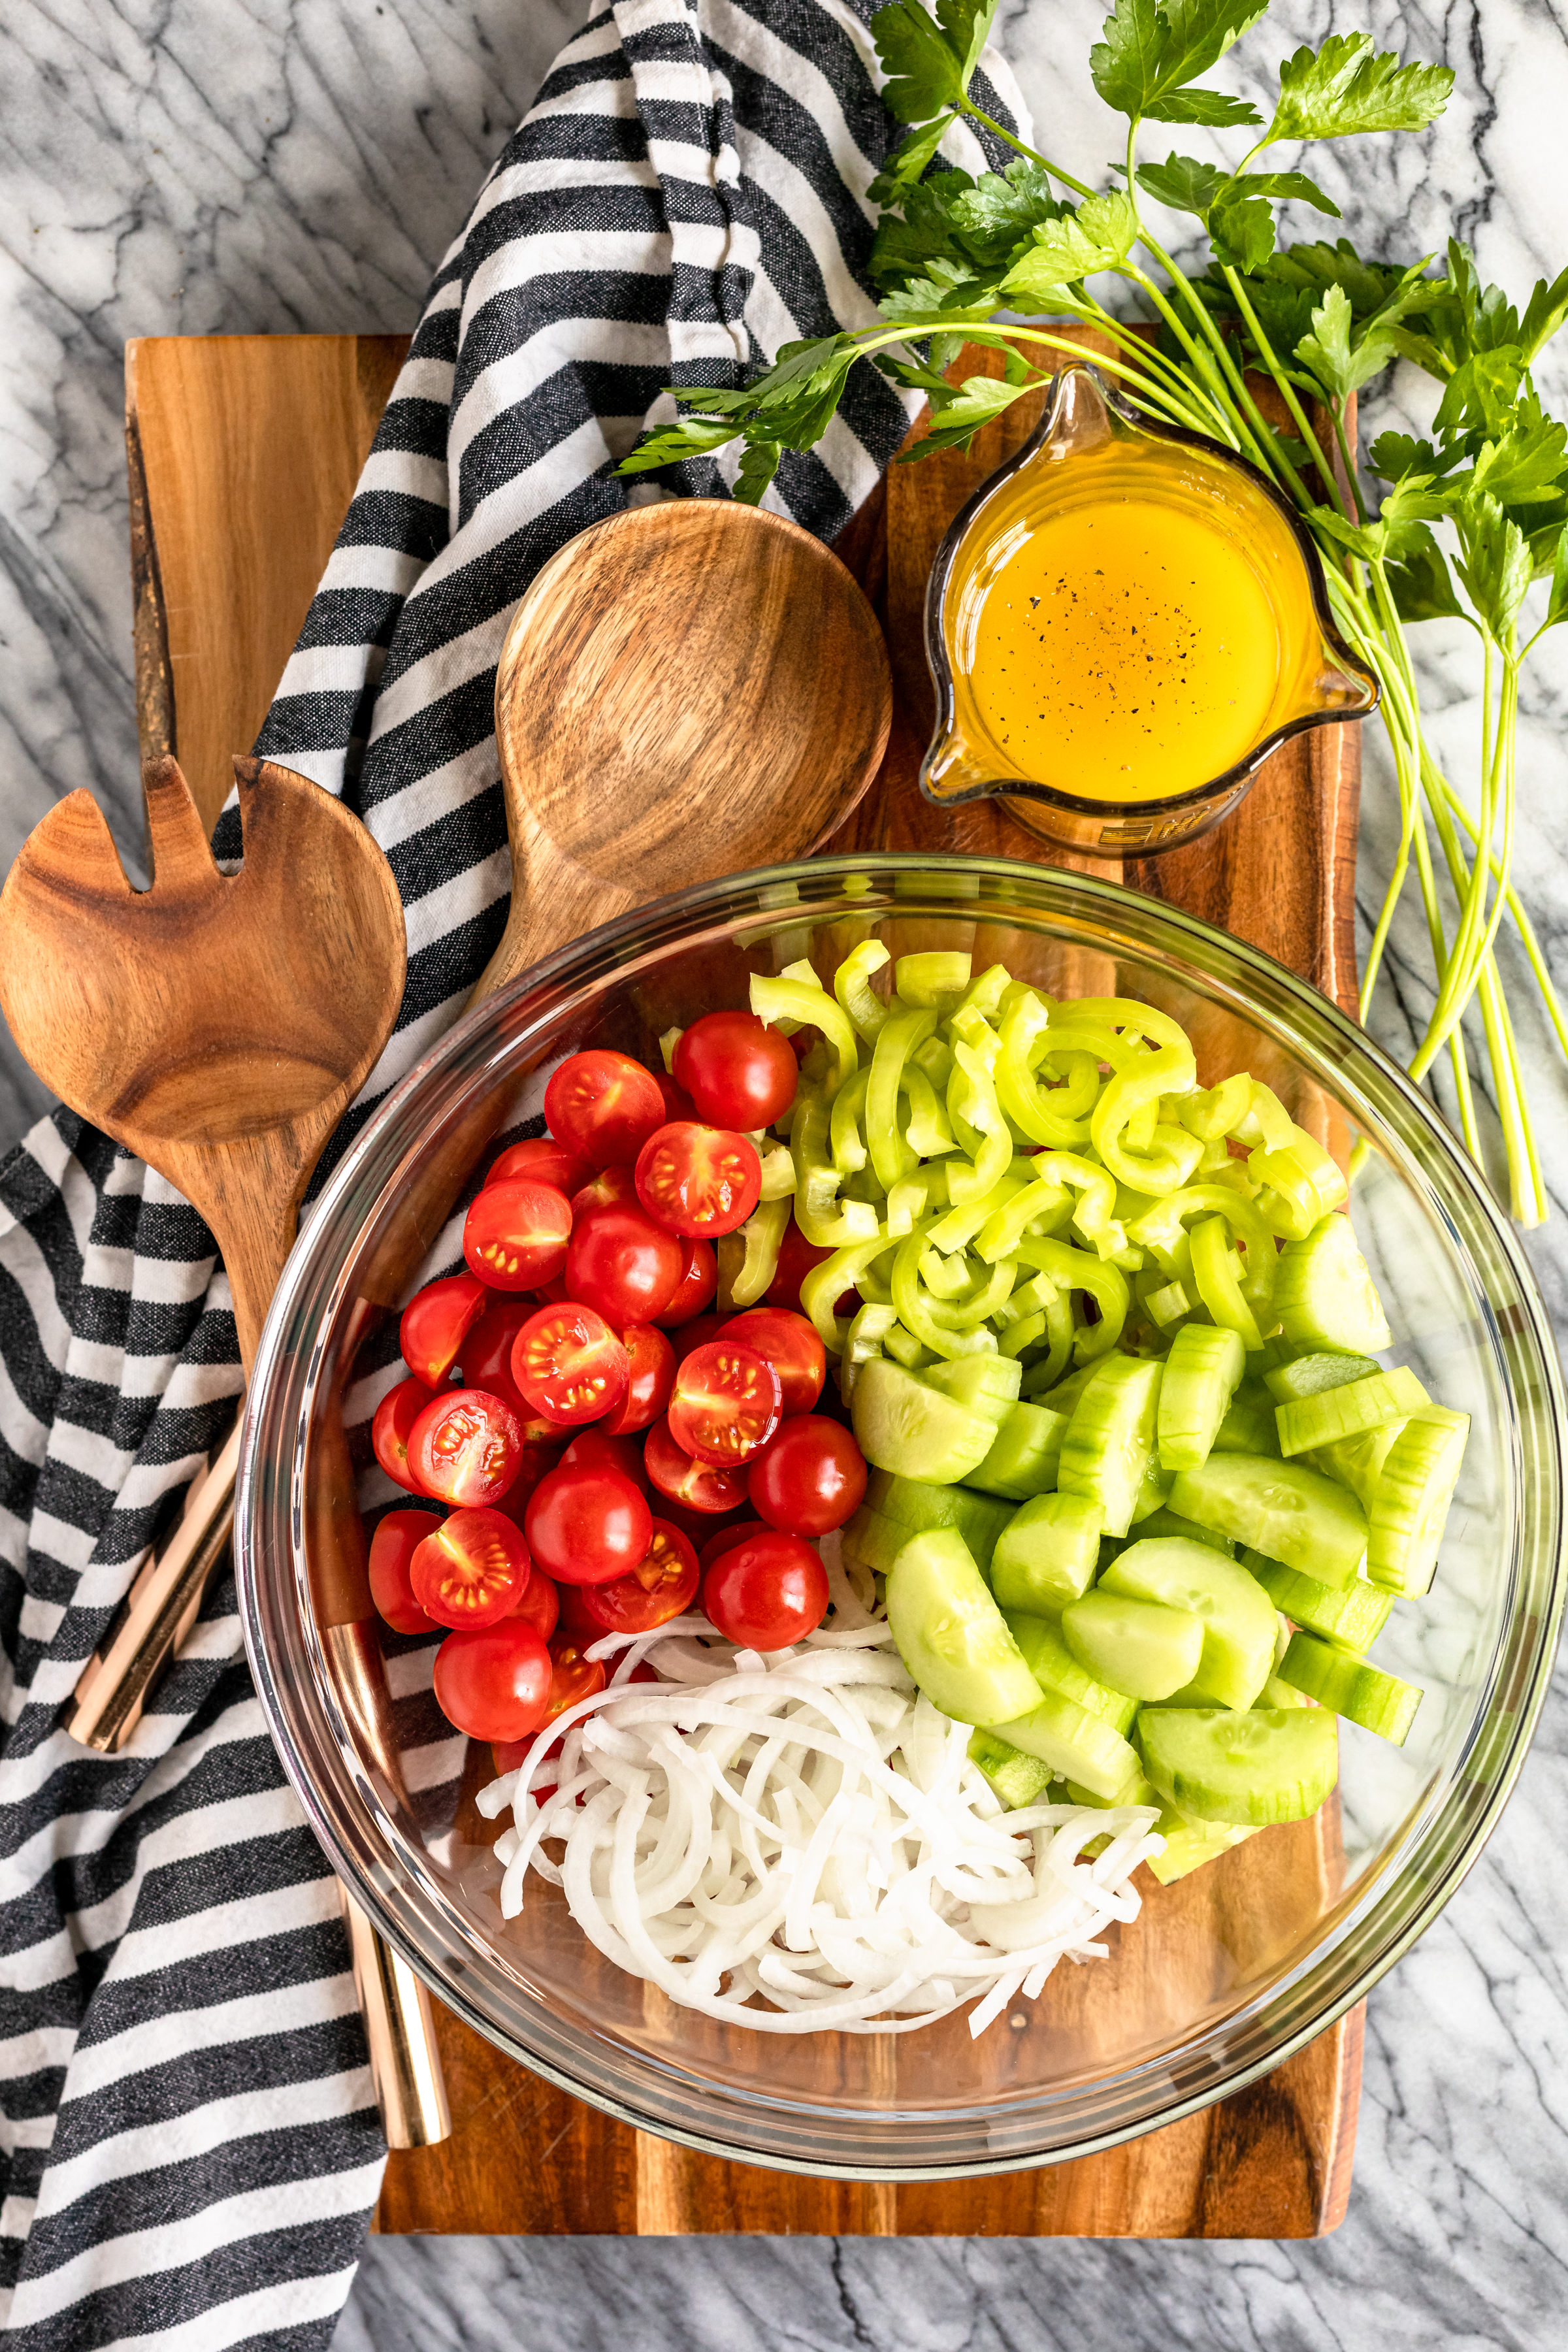 cherry tomato cucumber salad ingredients in a glass mixing bowl with wood salad servers